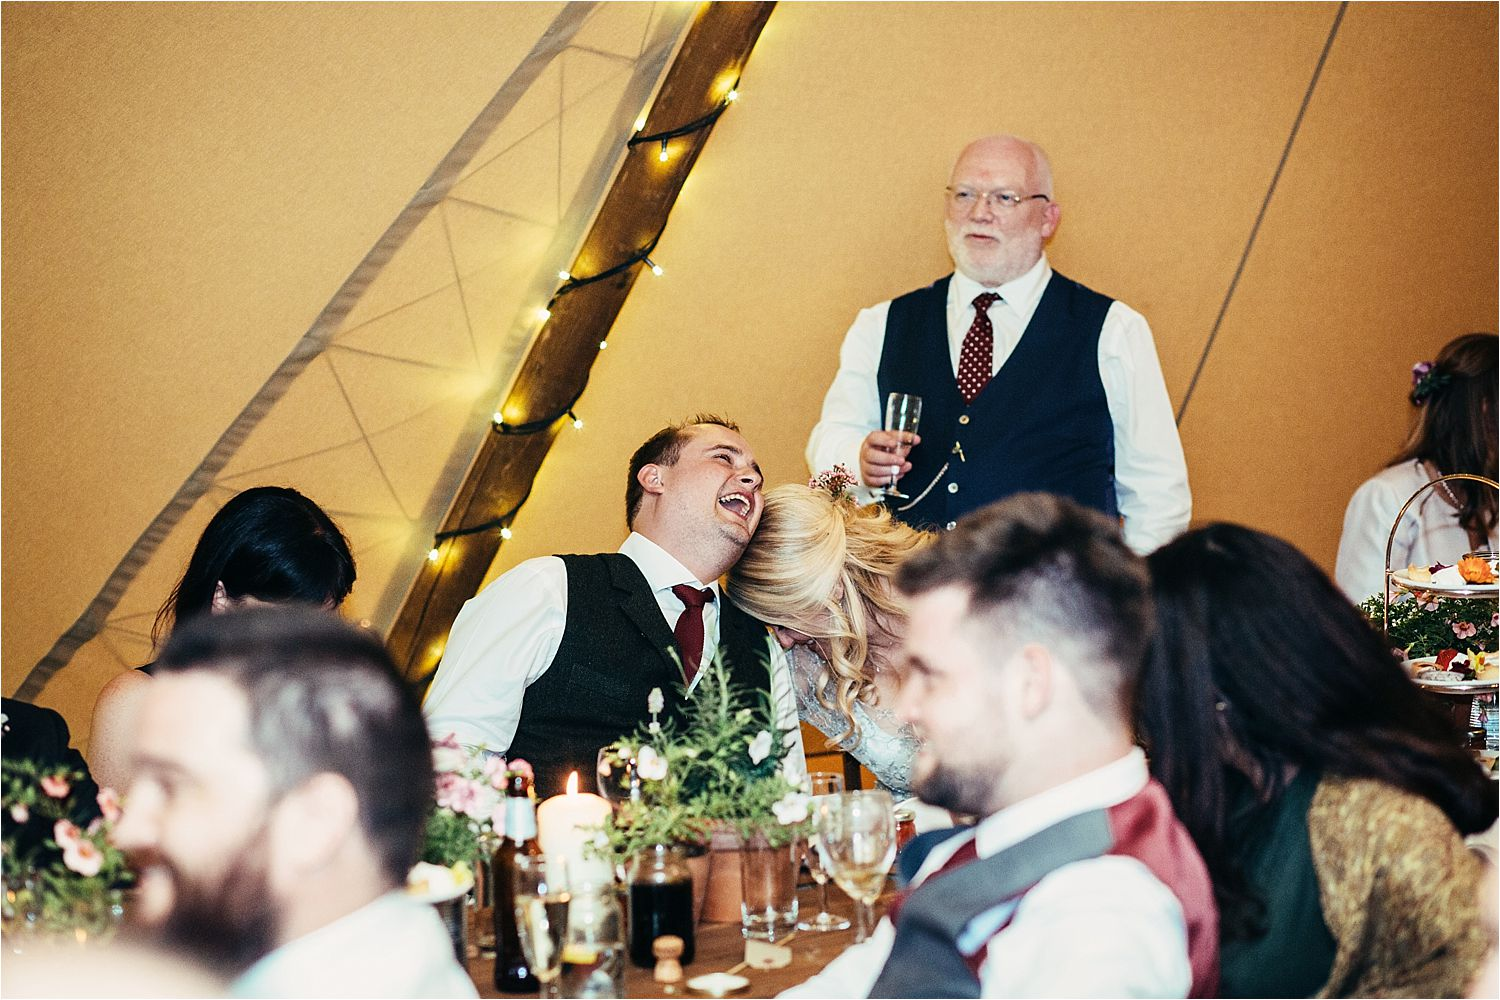 Reactions to speeches at Bedfordshire tipi wedding